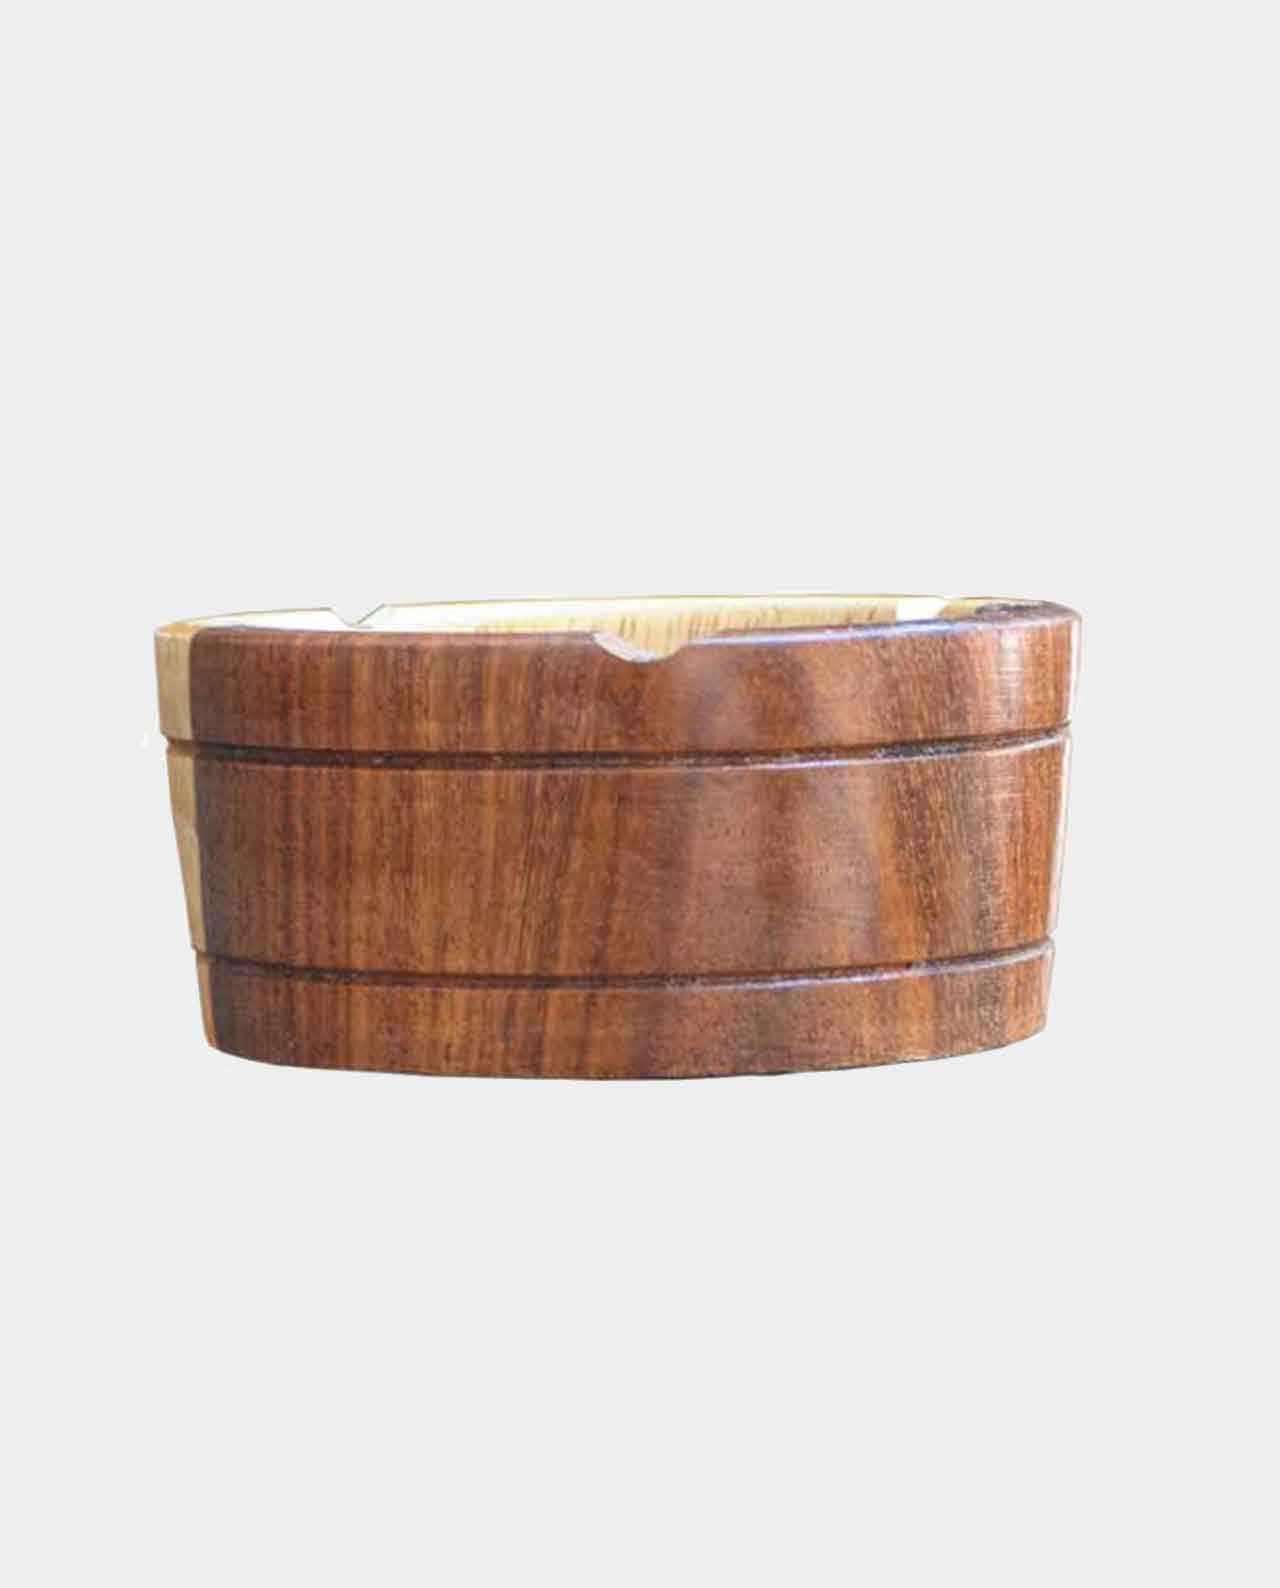 An ashtray Handmade of Asersus wooden